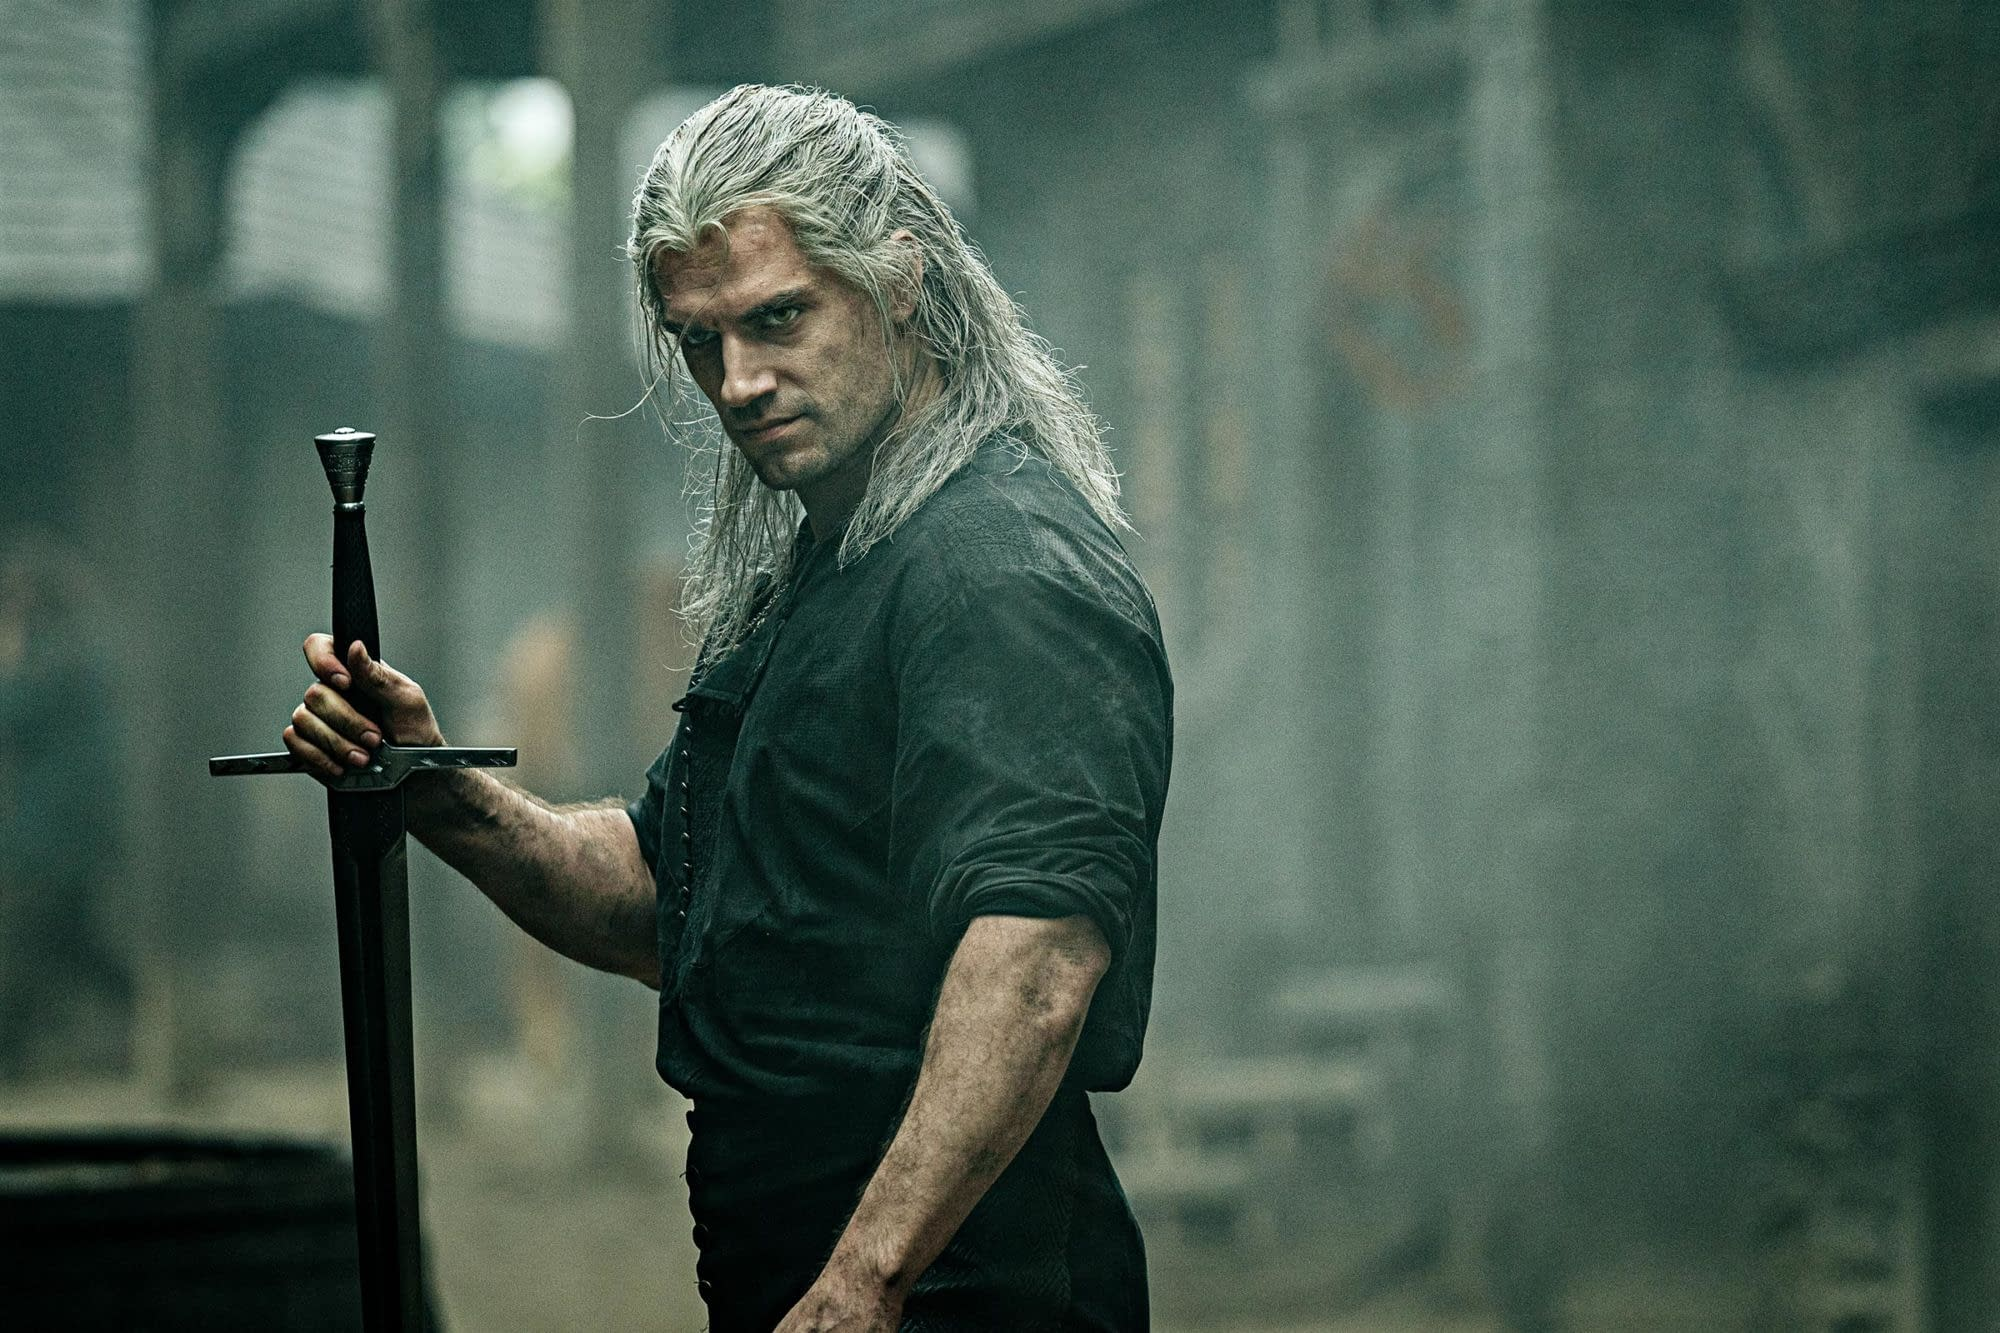 """""""The Witcher"""" Season 2 Production Halted; First Major Made-In-UK TV Drama Shuttered Over Coronavirus Concerns [REPORT]"""